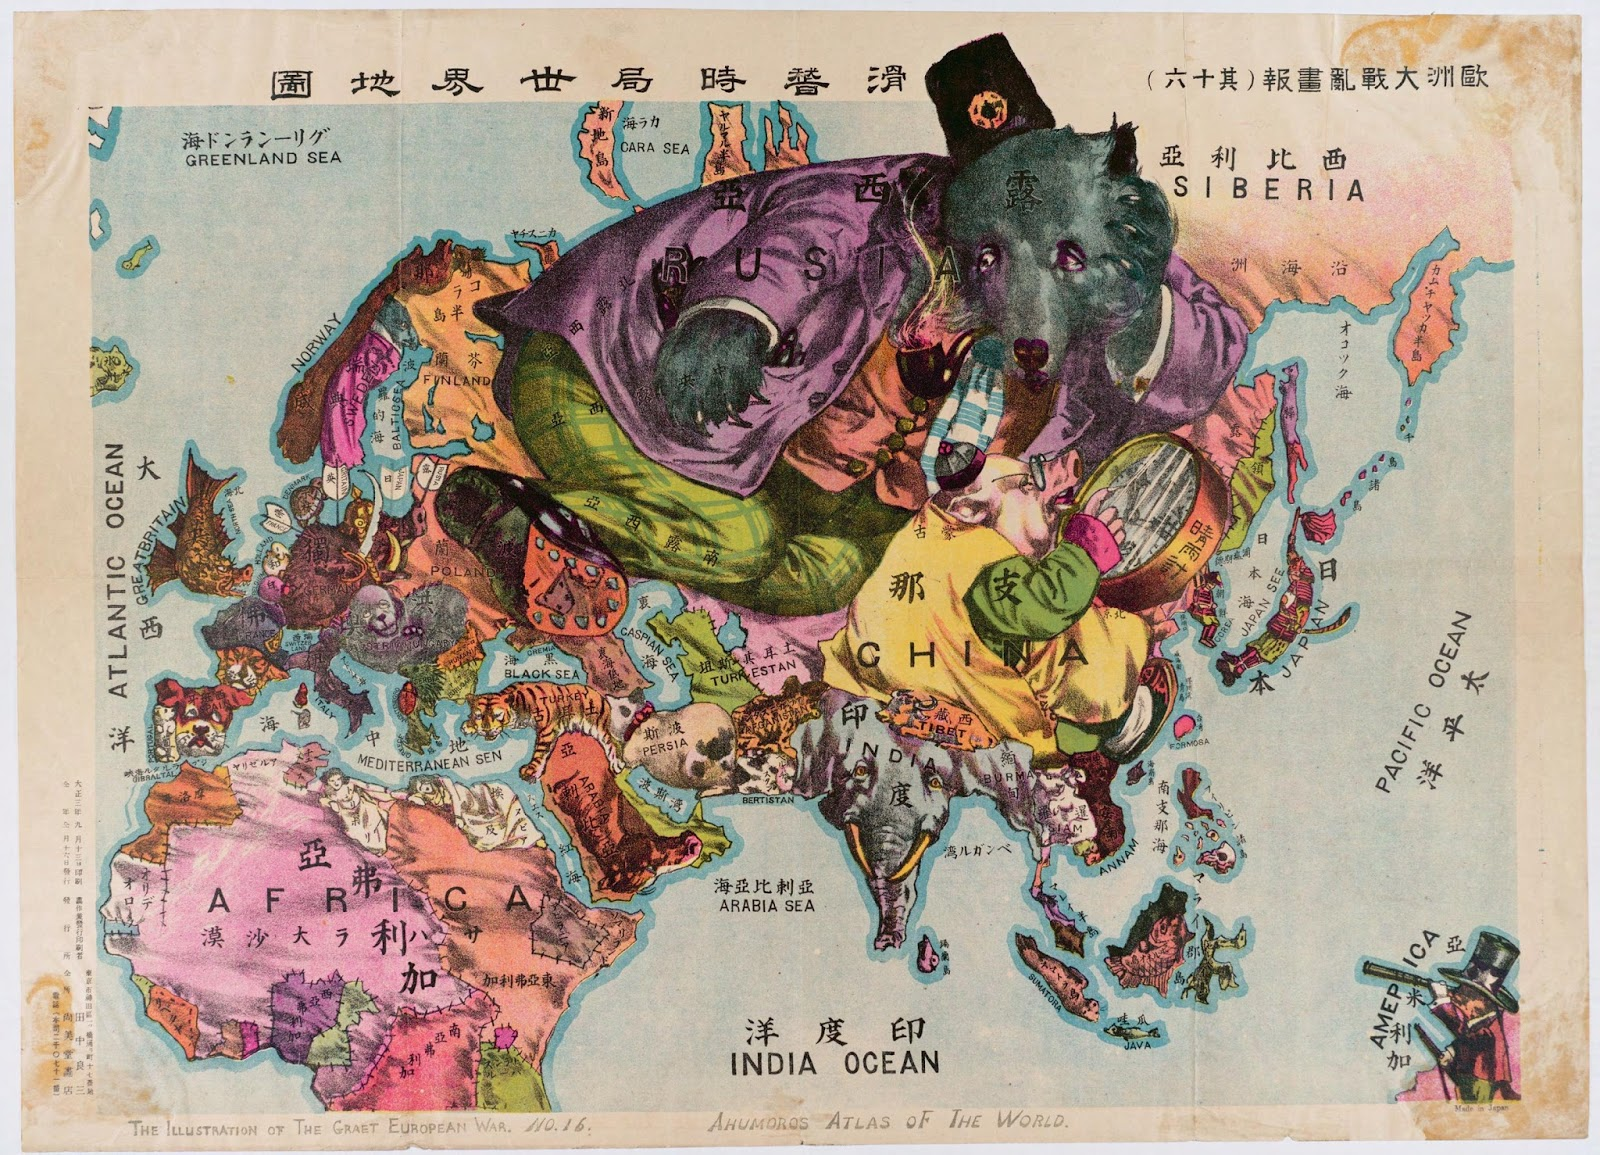 The map show an interesting world view from Japan